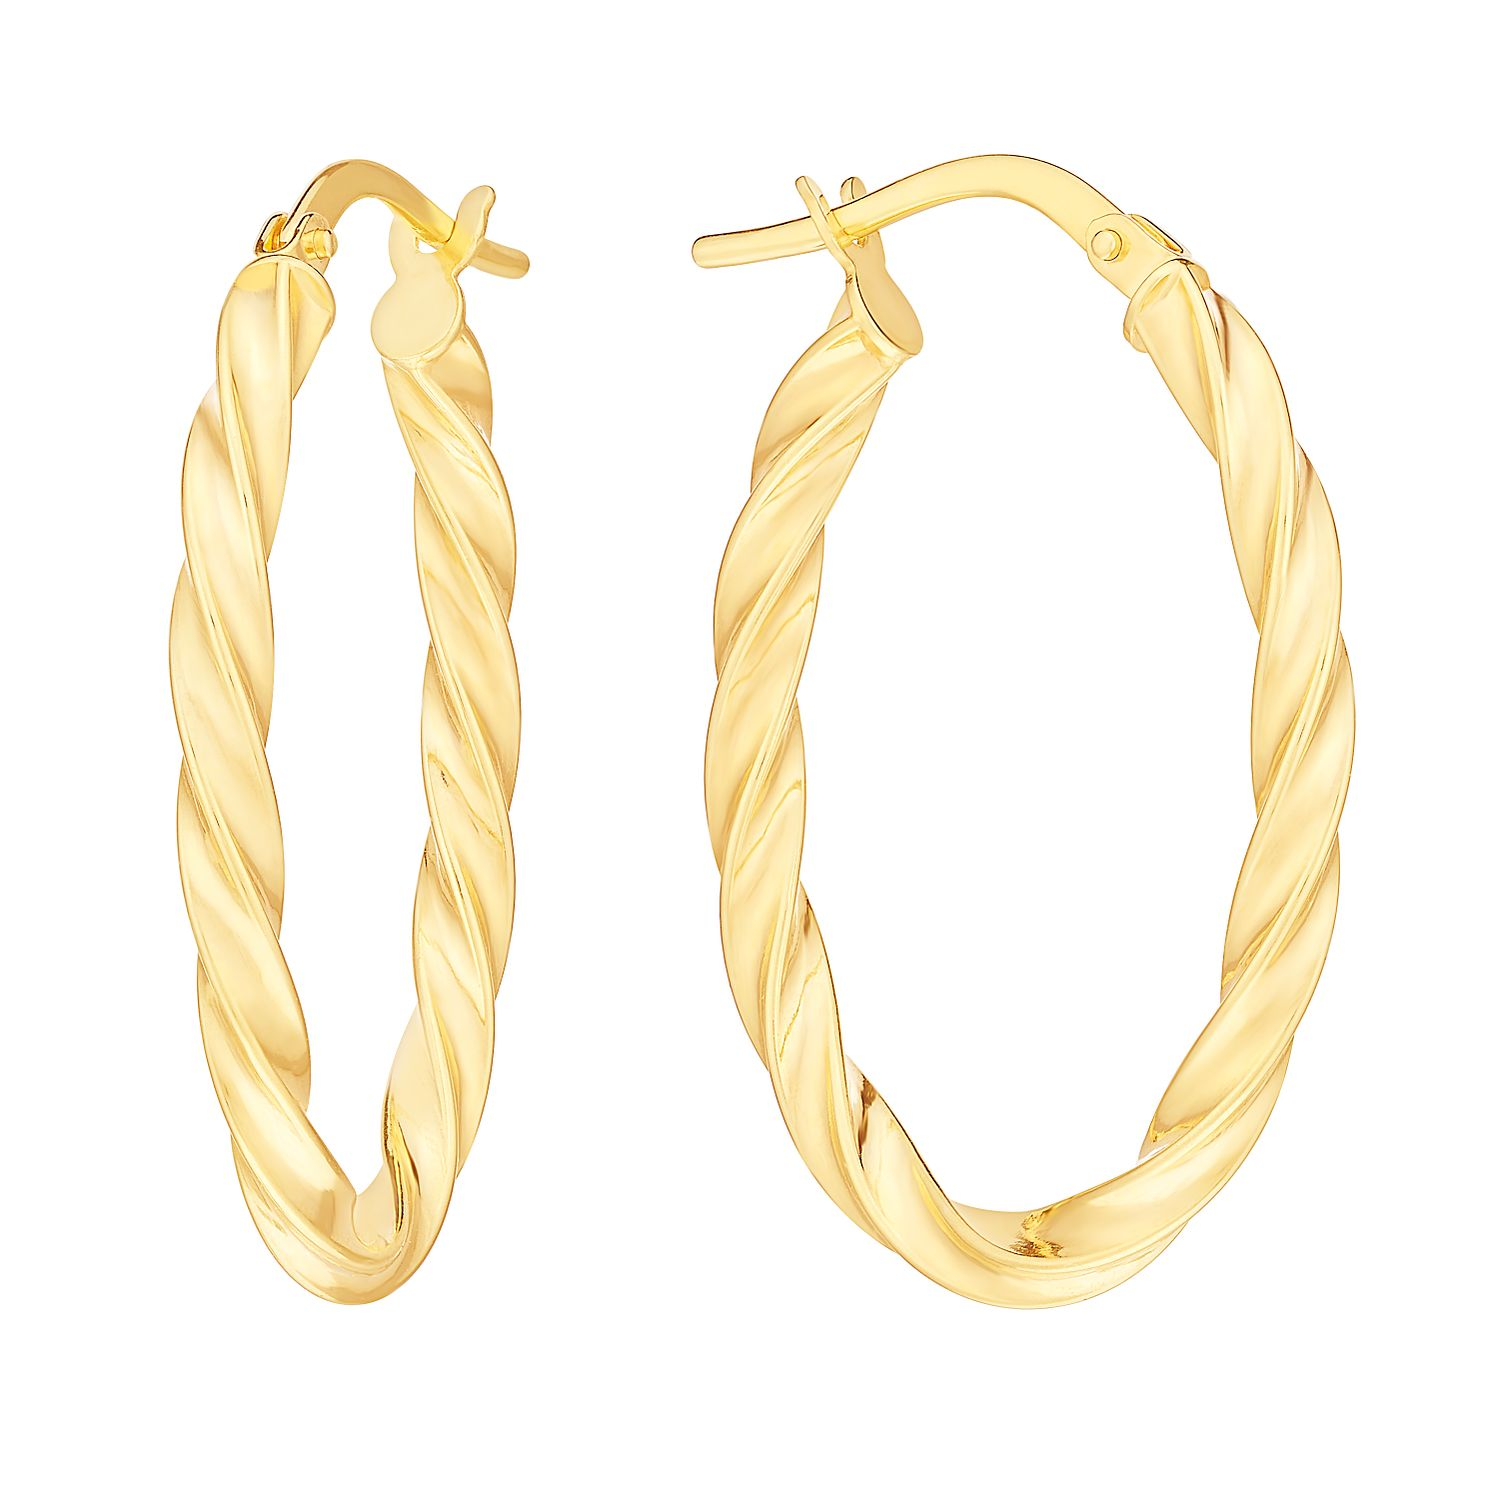 9ct Yellow Gold Twist Oval Hoop Earrings - Product number 2968908